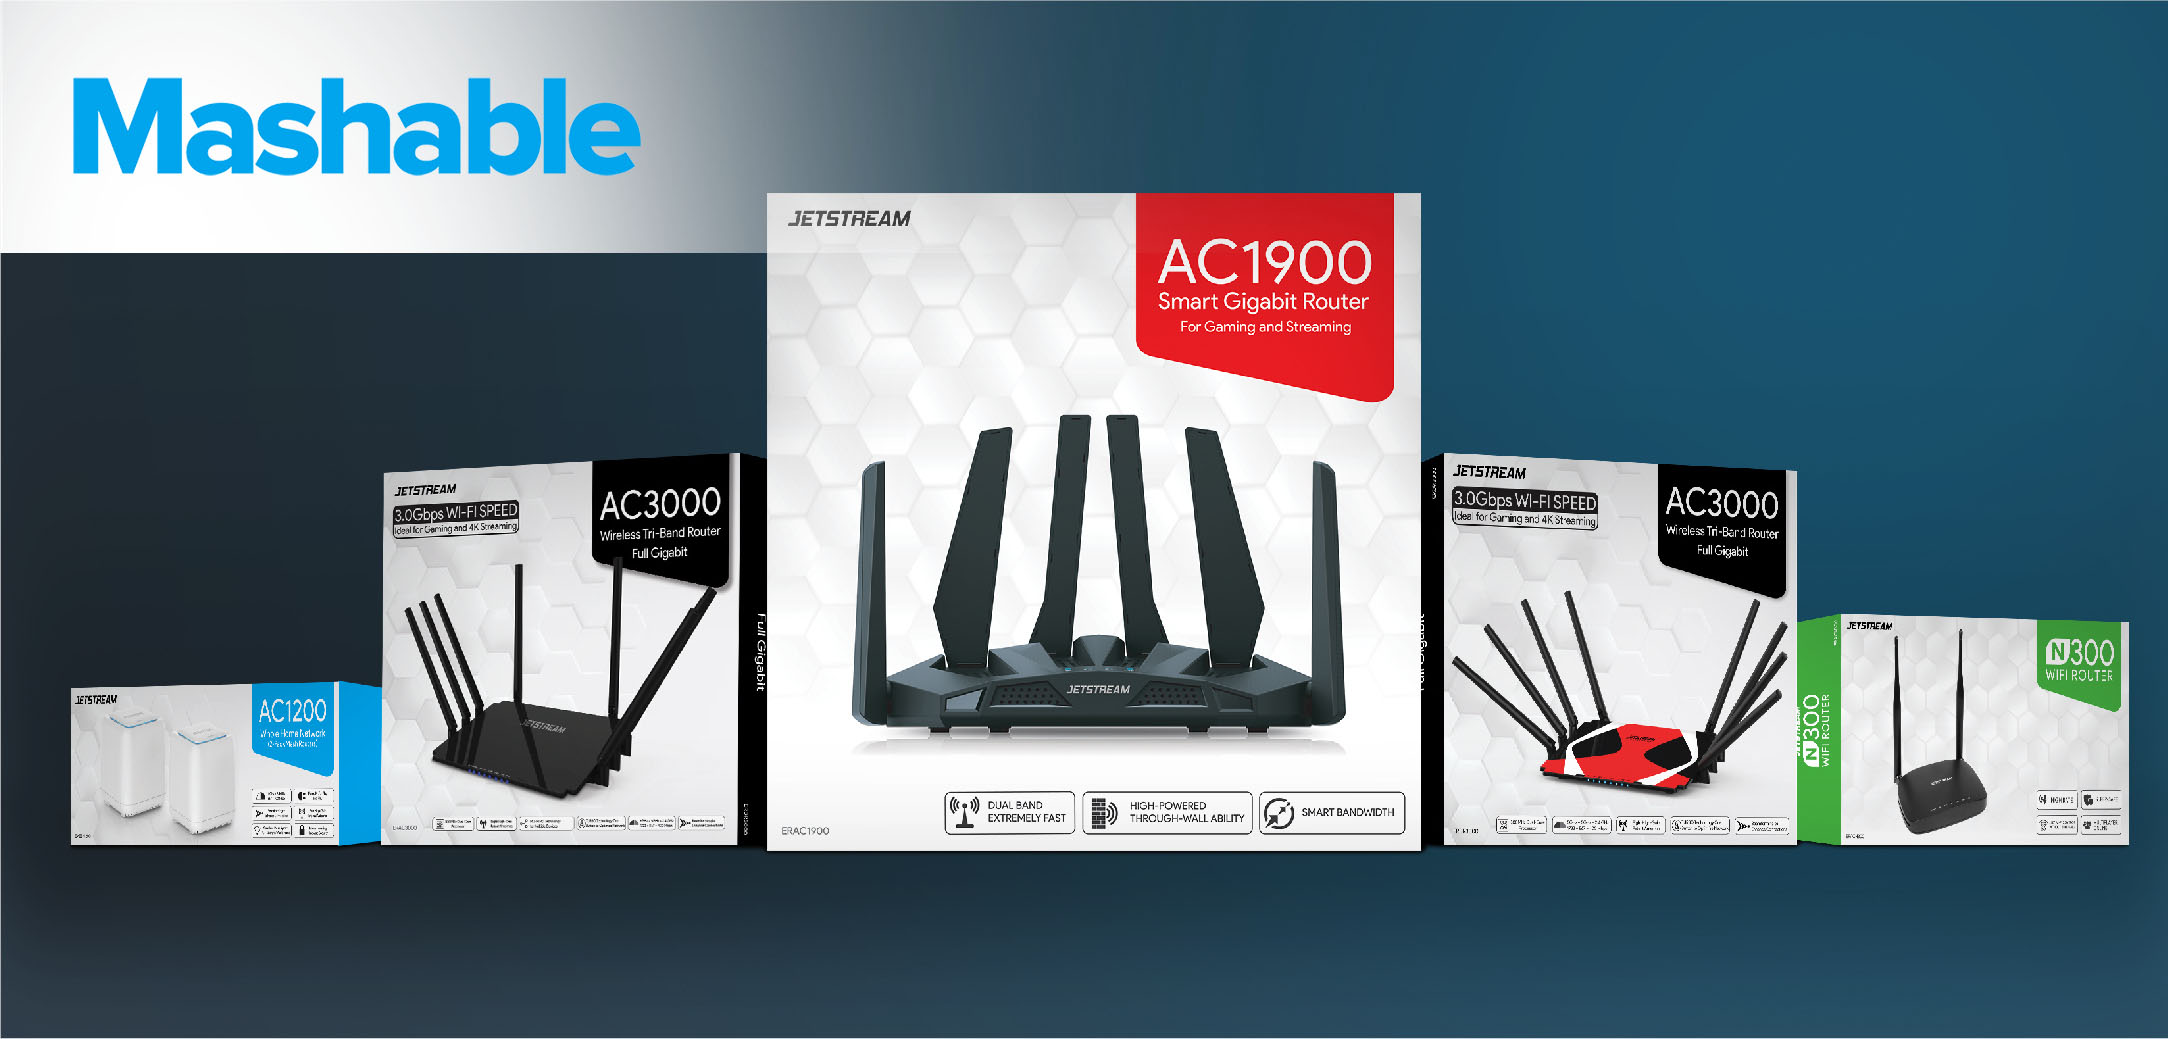 Jetstream is Walmart's new line of super affordable Wi-Fi routers and the prices are *really* good